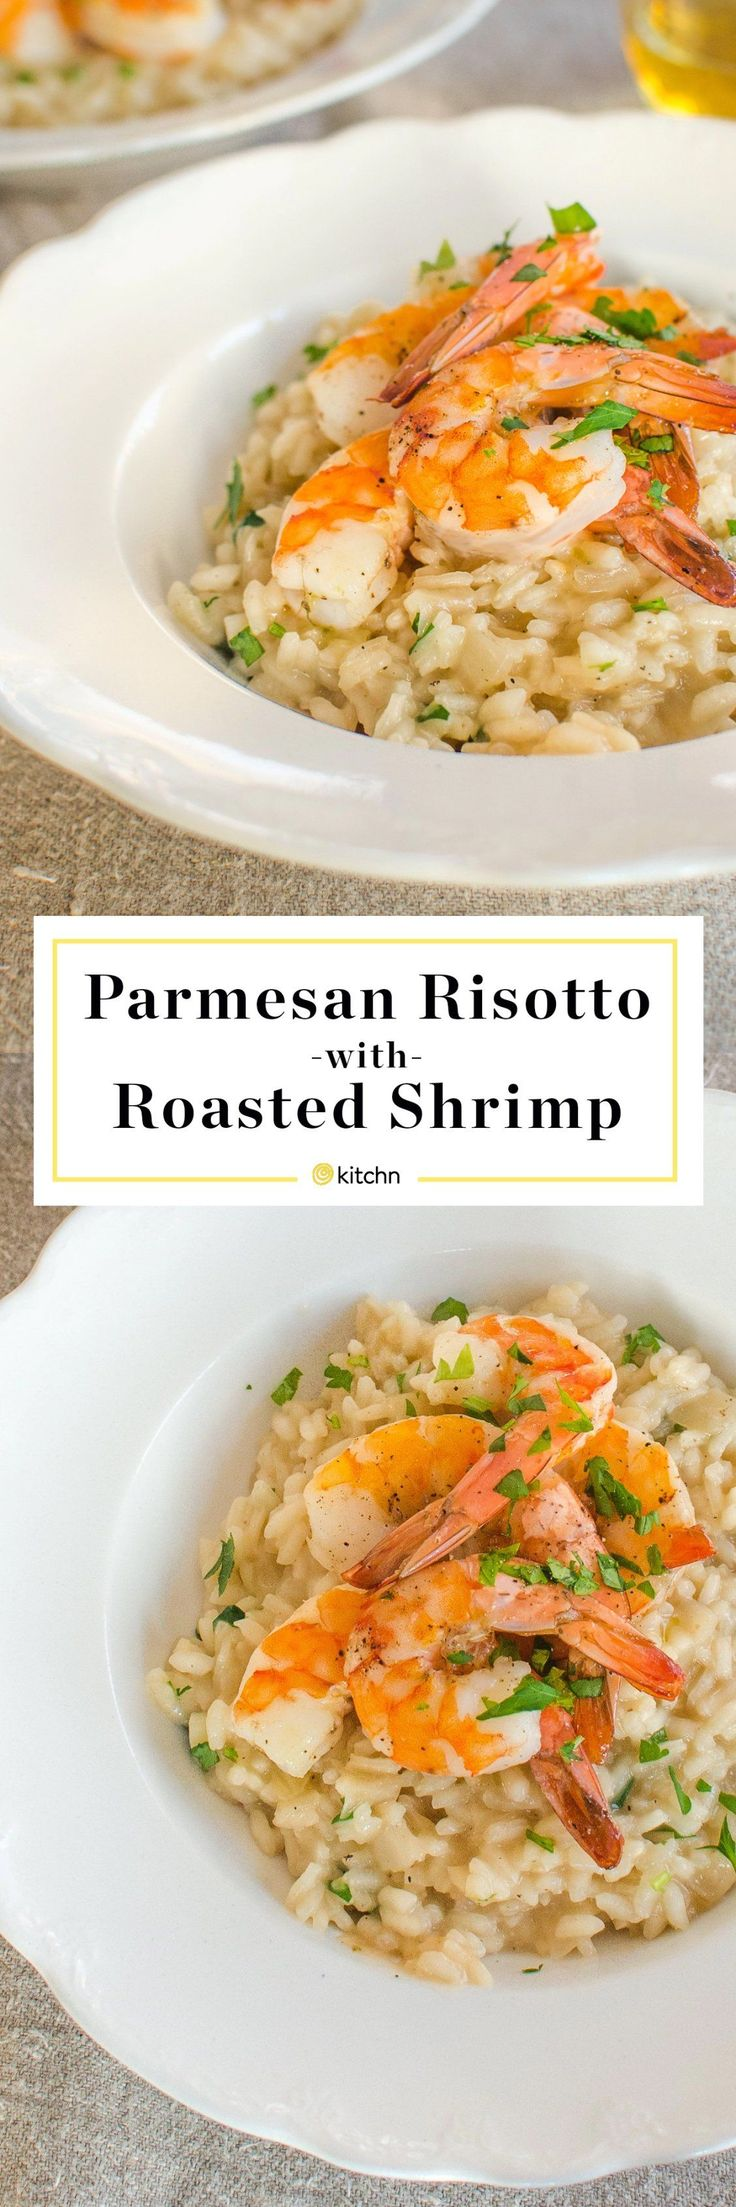 Parmesan Risotto with Roasted Shrimp Recipe. This is a surprisingly quick and easy weeknight meal, but it's also one of those impressive dinner recipes everyone loves. Perfect for a date night in or a romantic valentine's day dinner for two!